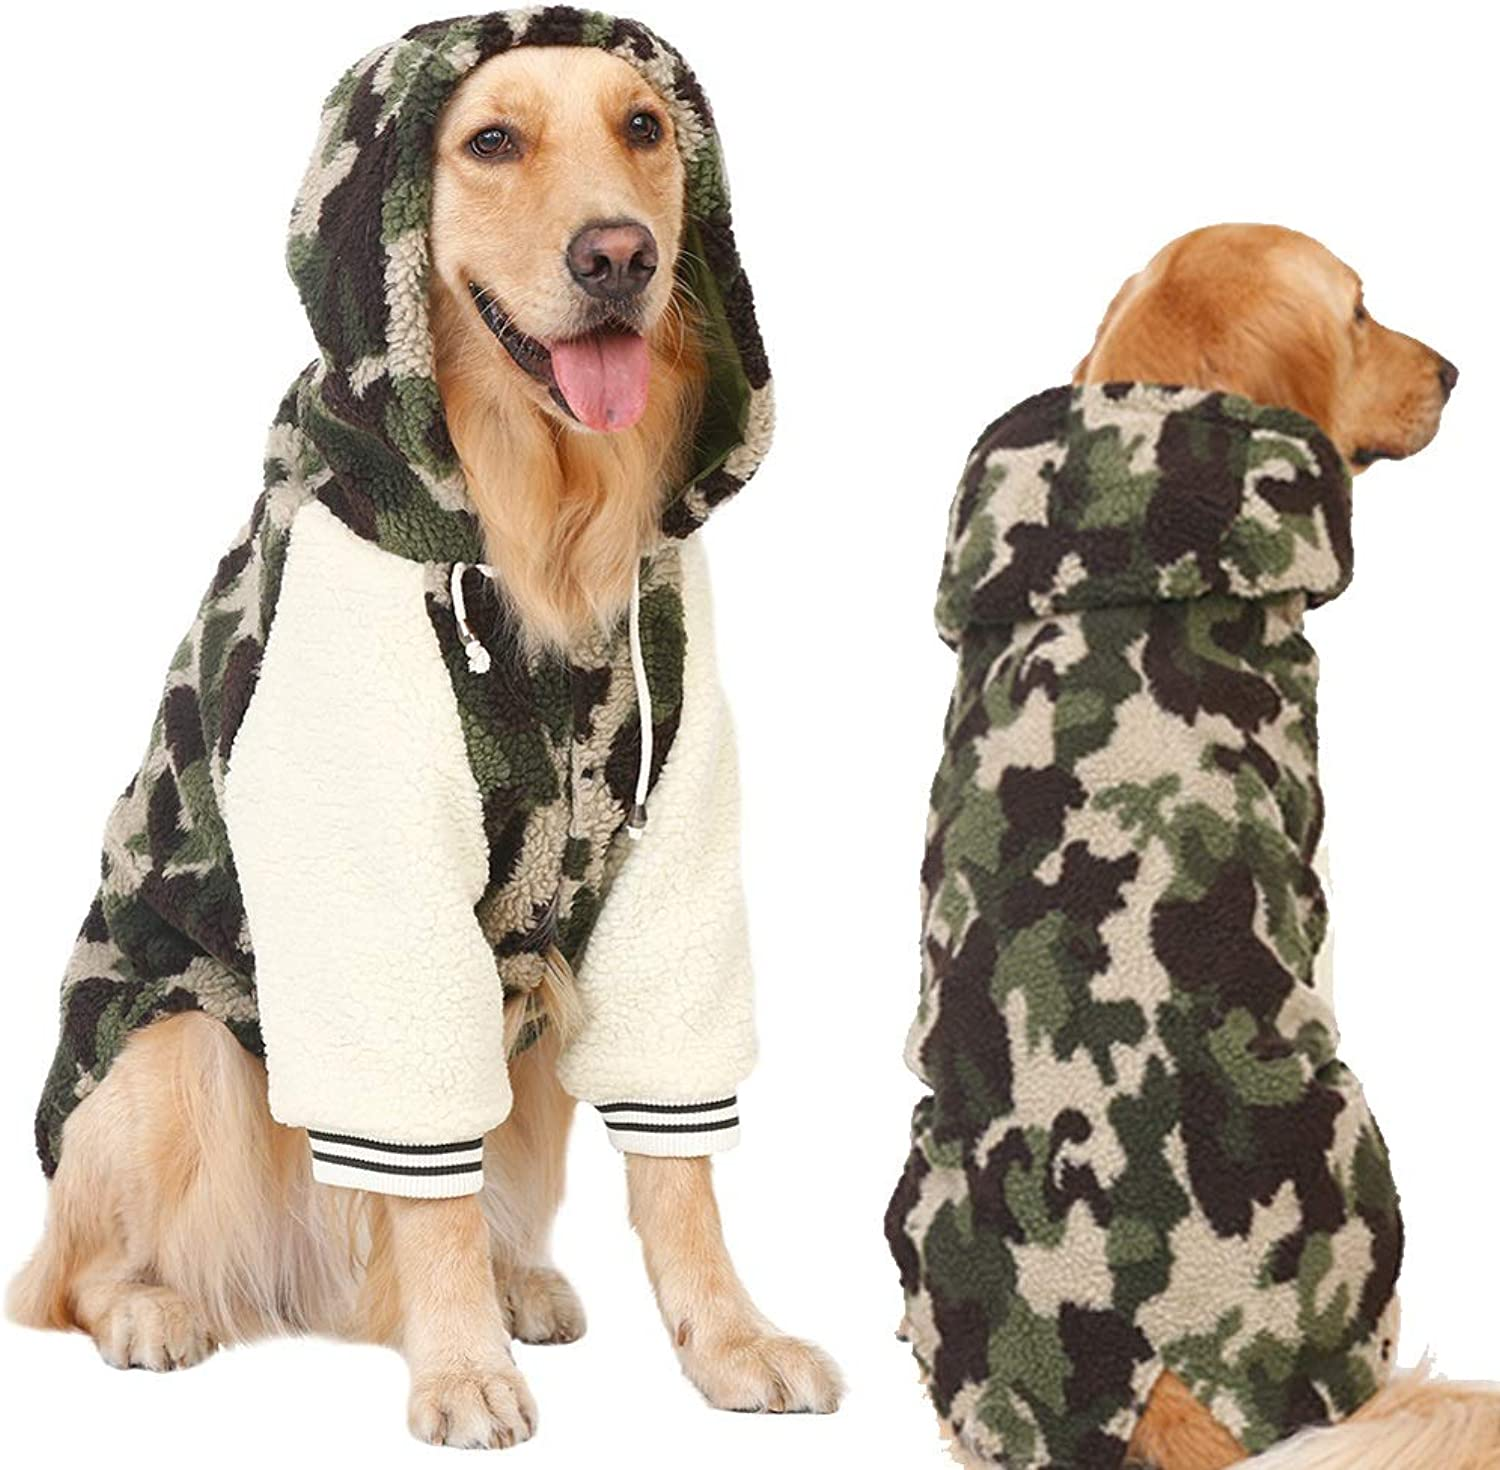 Dog Coat Supplement, Coats for Dogs Dog Apparel with Hat for Cold Weather, Pet Windproof Cloth Dogs Warm Classic Army Green Soft Vest Hoodies, Puppy Warm Winter Coats for Large Dogs